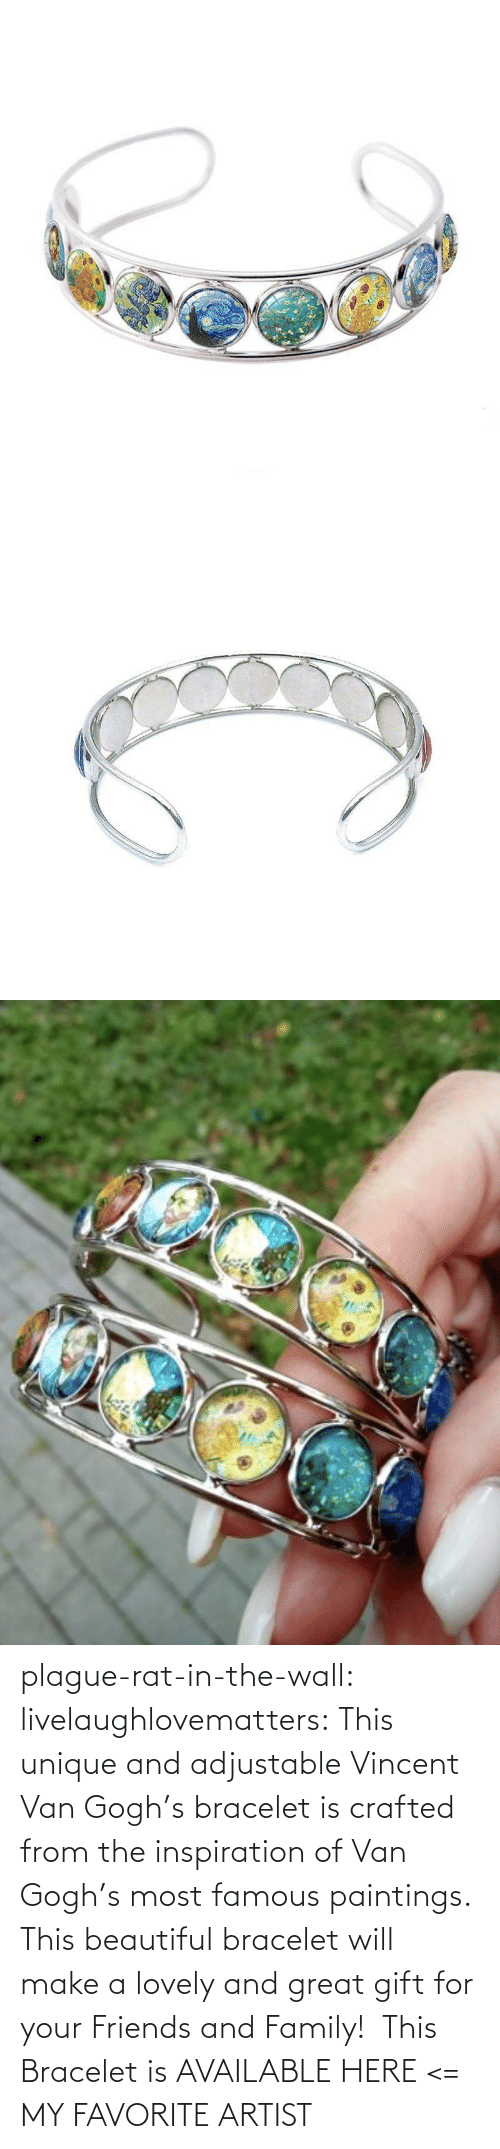 lovely: plague-rat-in-the-wall:  livelaughlovematters: This unique and adjustableVincent Van Gogh's bracelet is crafted from the inspiration of Van Gogh's most famous paintings. This beautiful bracelet will make a lovely and great gift for your Friends and Family! This Bracelet is AVAILABLE HERE <=  MY FAVORITE ARTIST